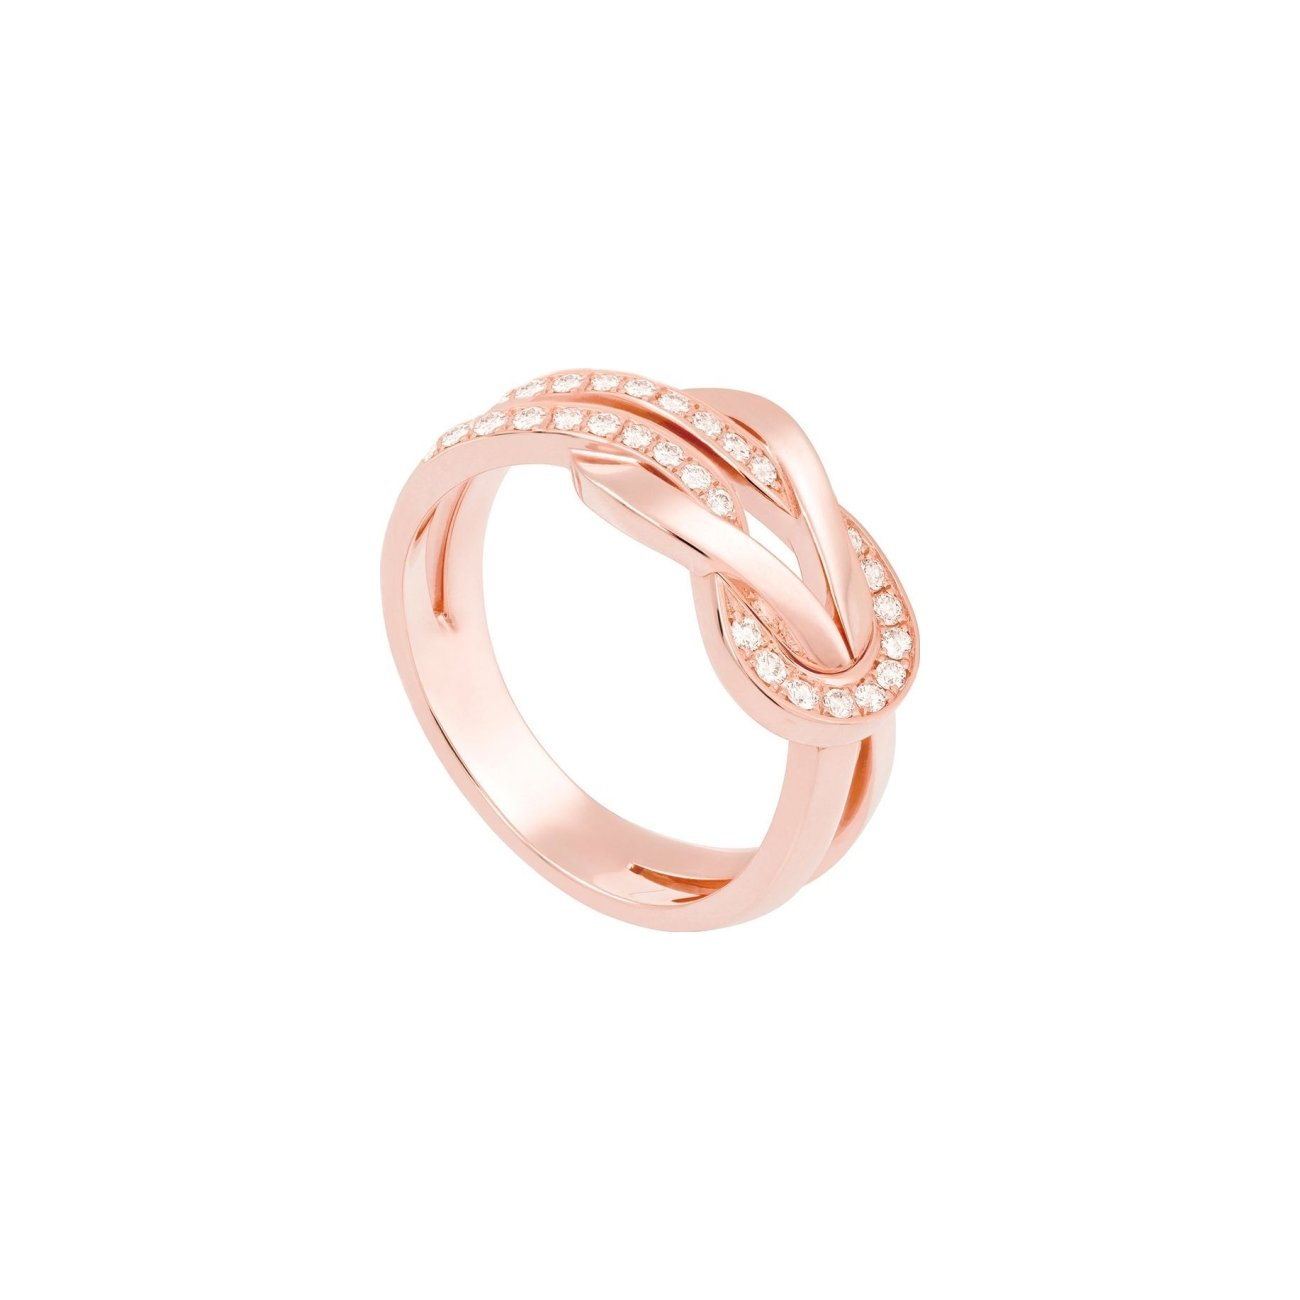 Bague FRED 8°0 en or rose et diamants vue 1